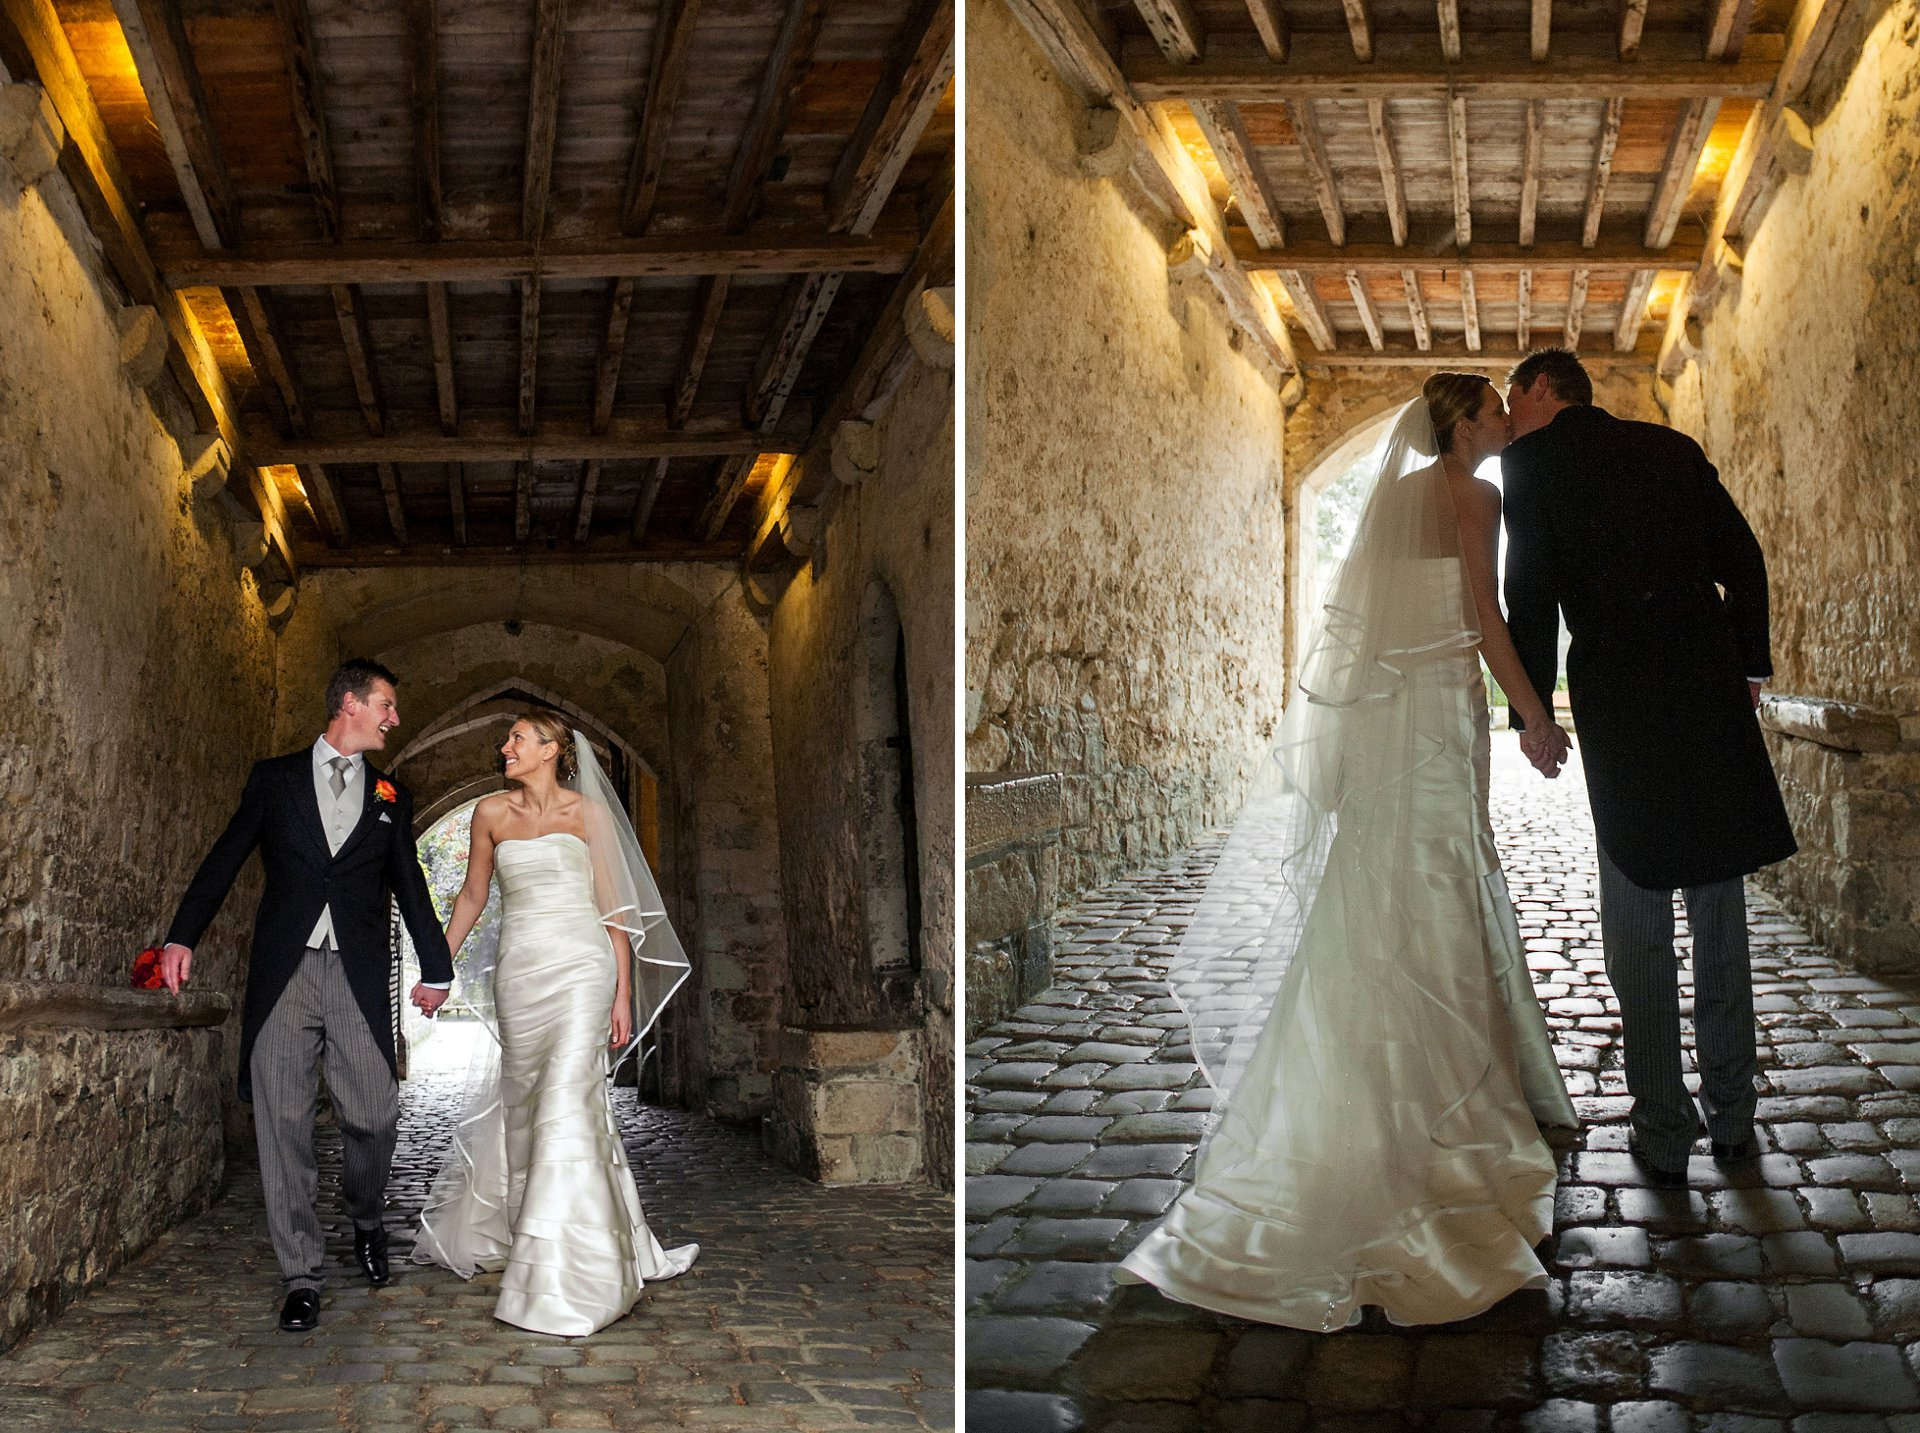 The Leeds Castle Gatehouse makes for dramatic wedding photographs including a silhouette here of Amy and Andrew as they walk towards the ruin and portcullis